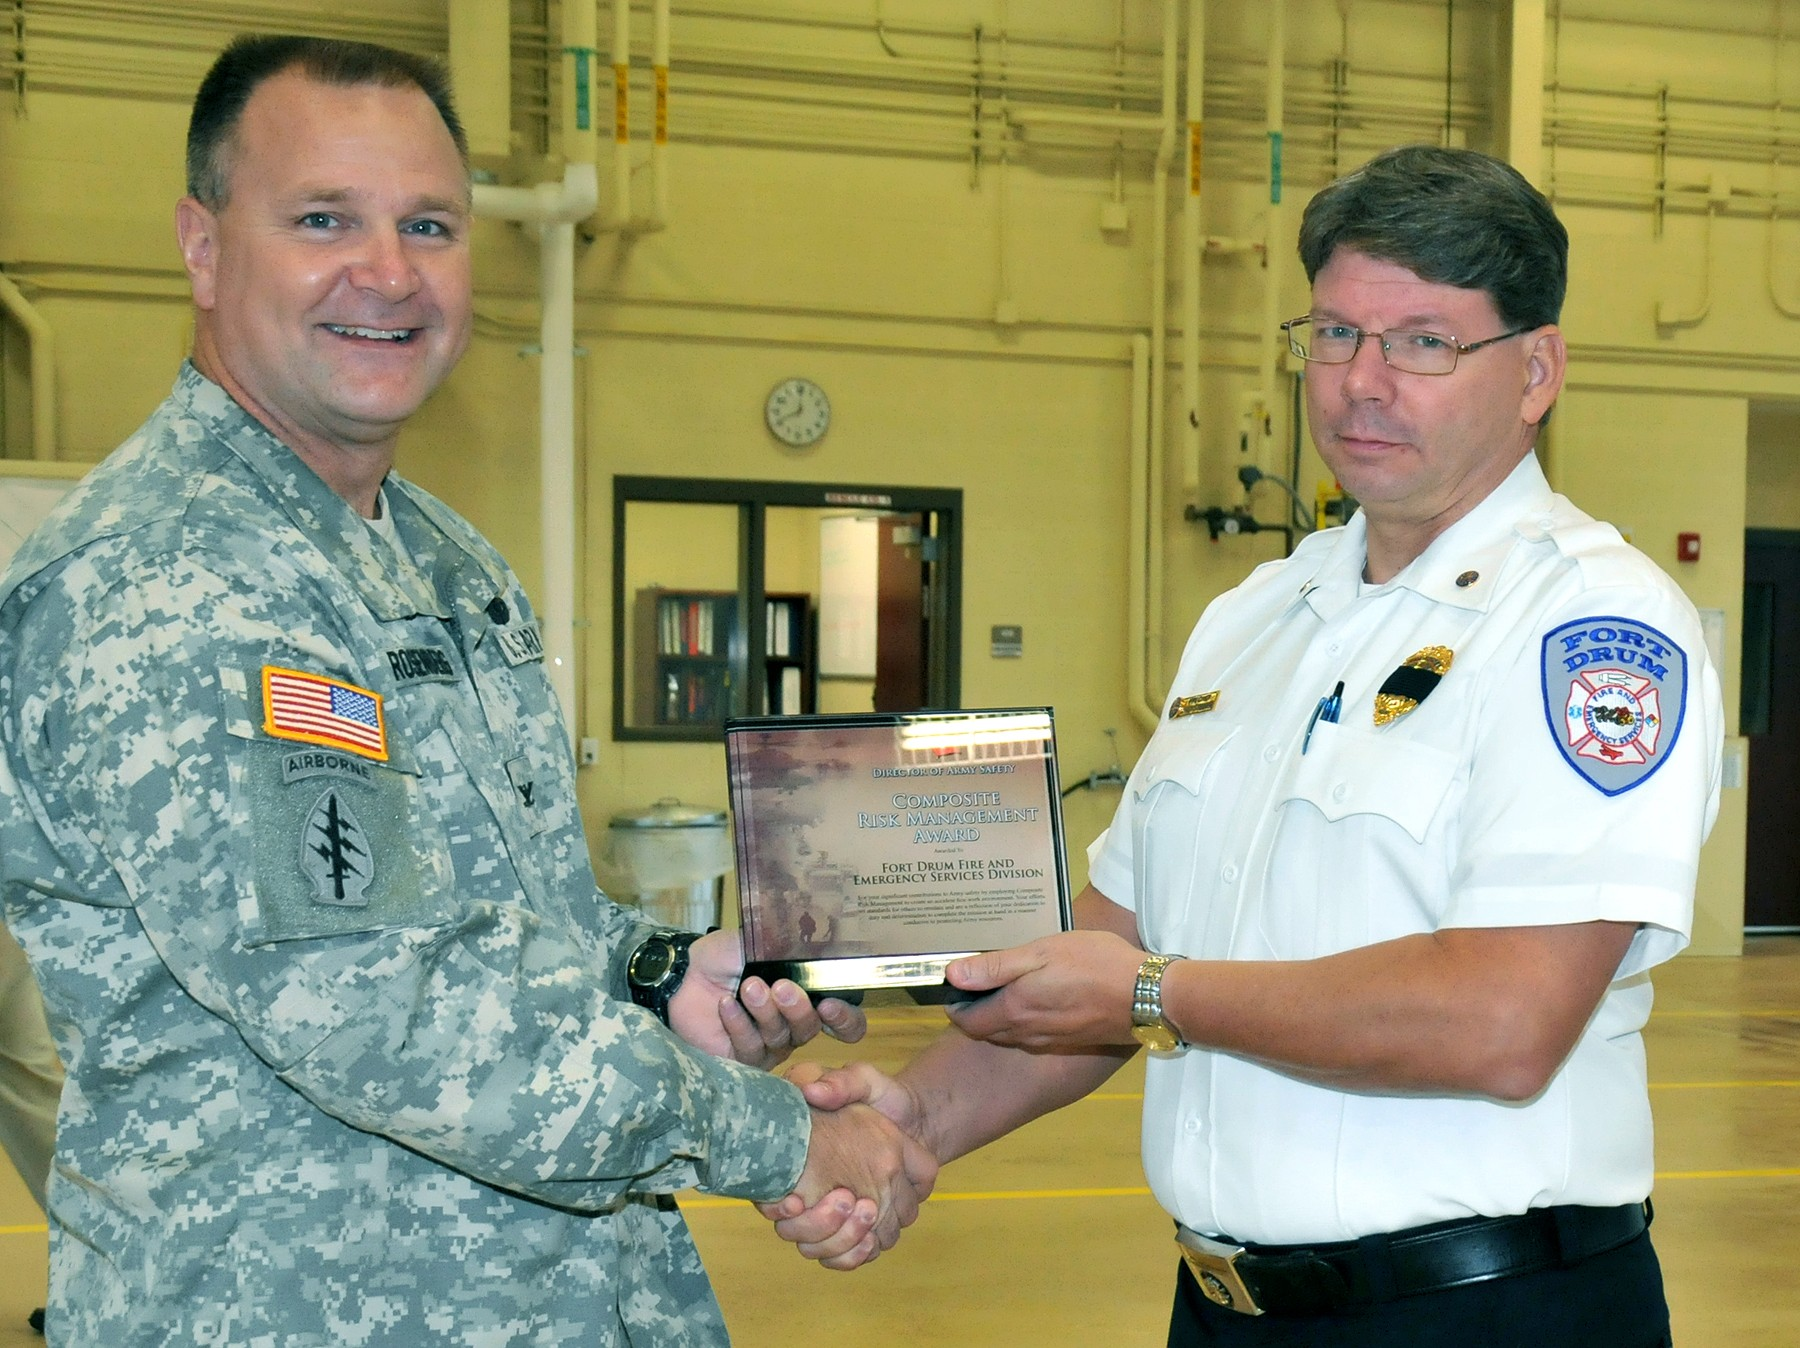 Fort Drum Fire Department Named Best In Army For Risk